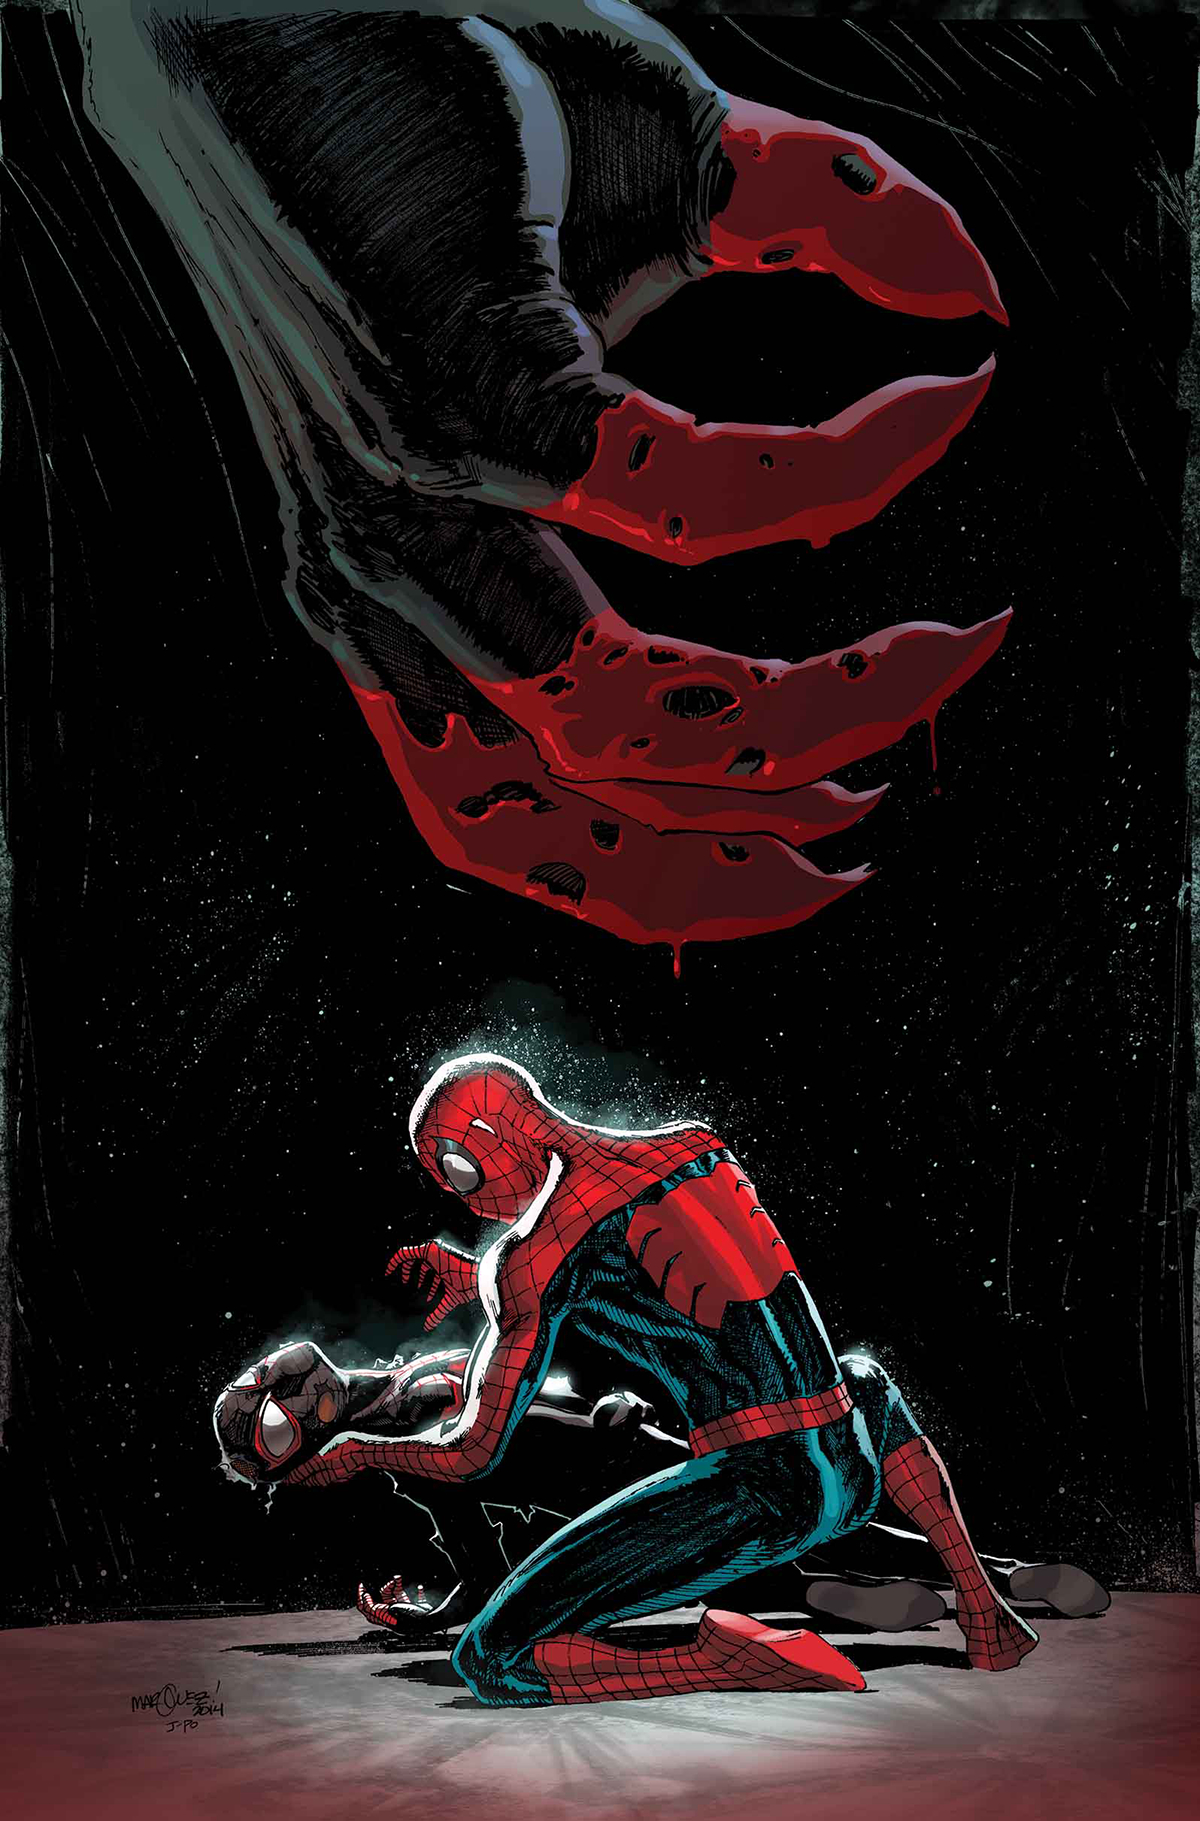 MILES MORALES ULTIMATE SPIDER-MAN #5